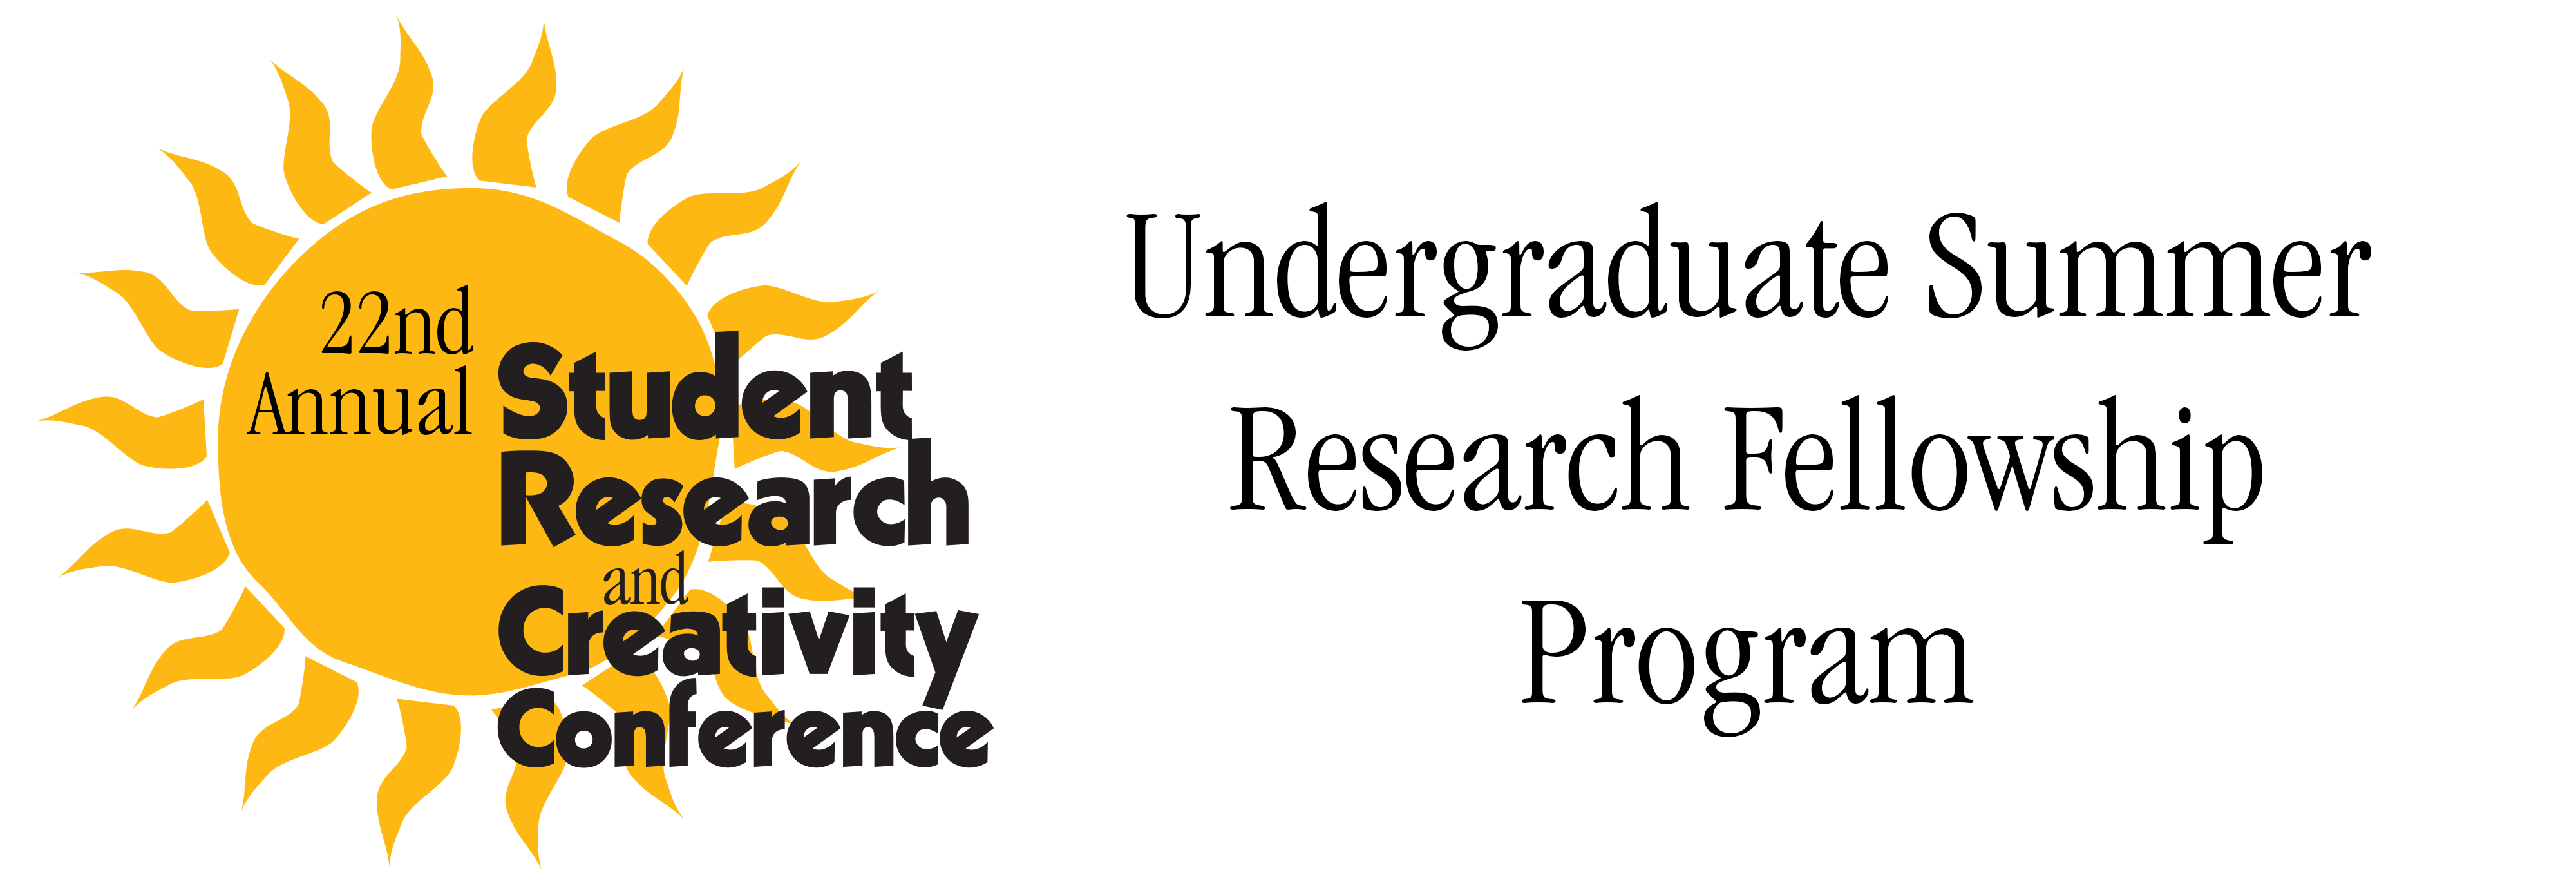 Undergraduate Summer Research Fellowship Program